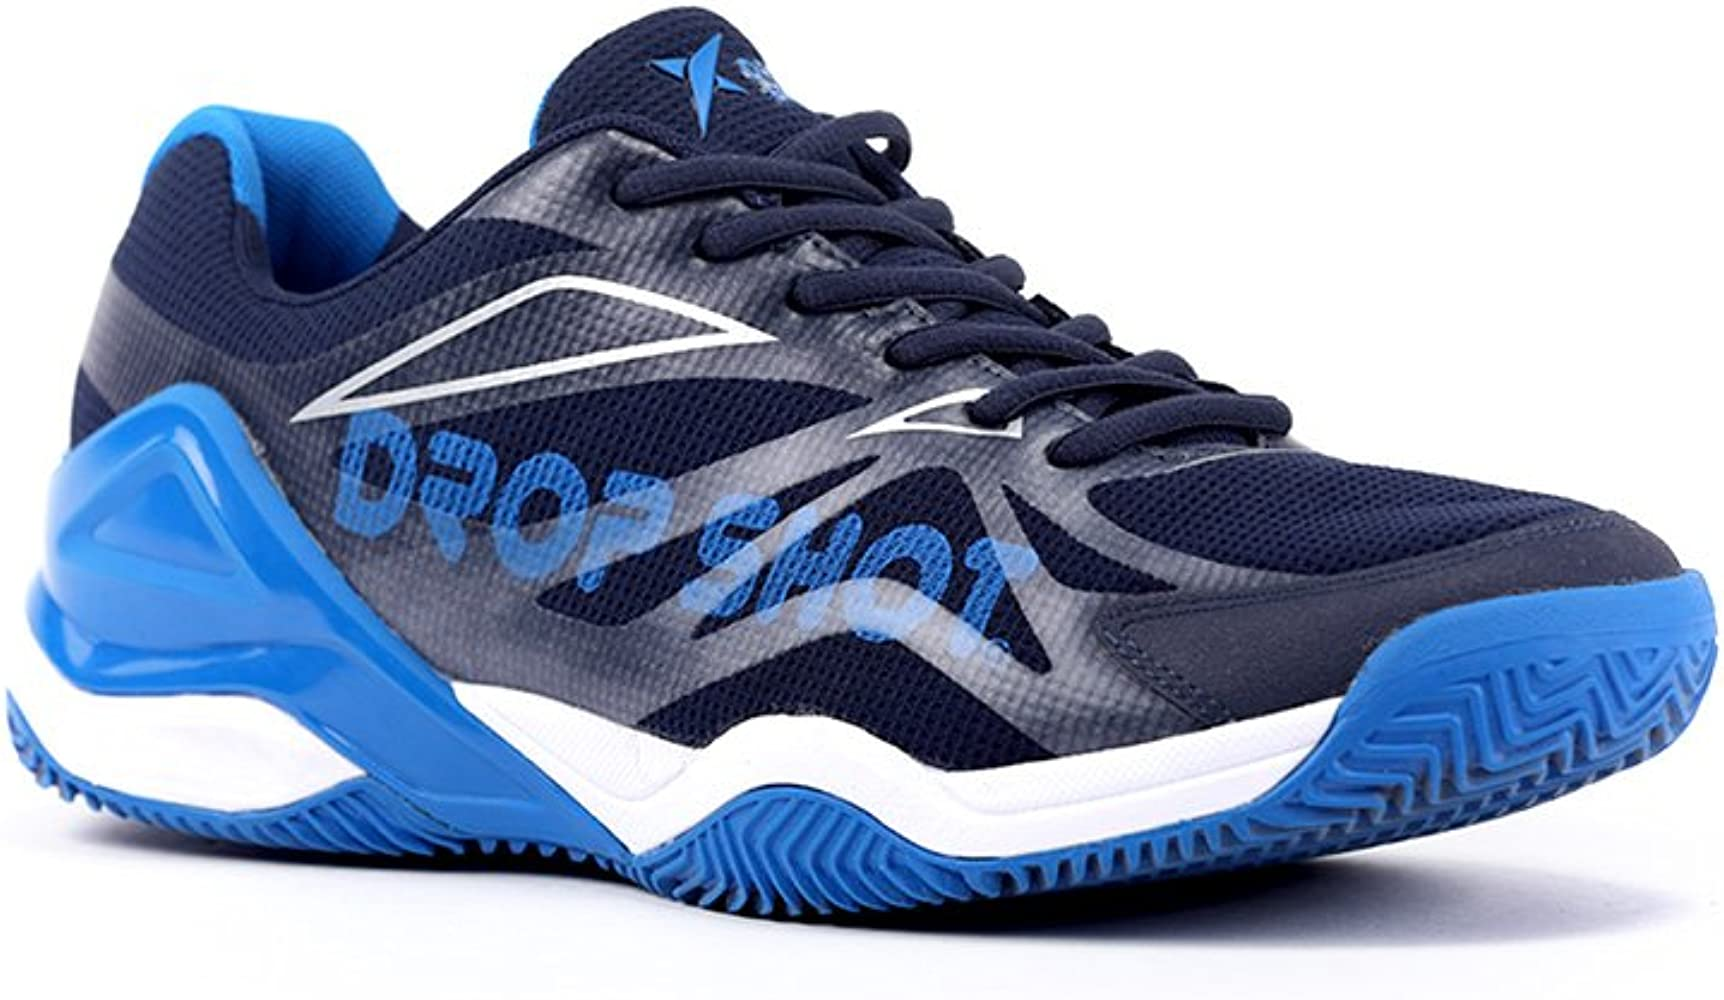 DROP SHOT Zapatillas Speed Pro: Amazon.es: Deportes y aire libre